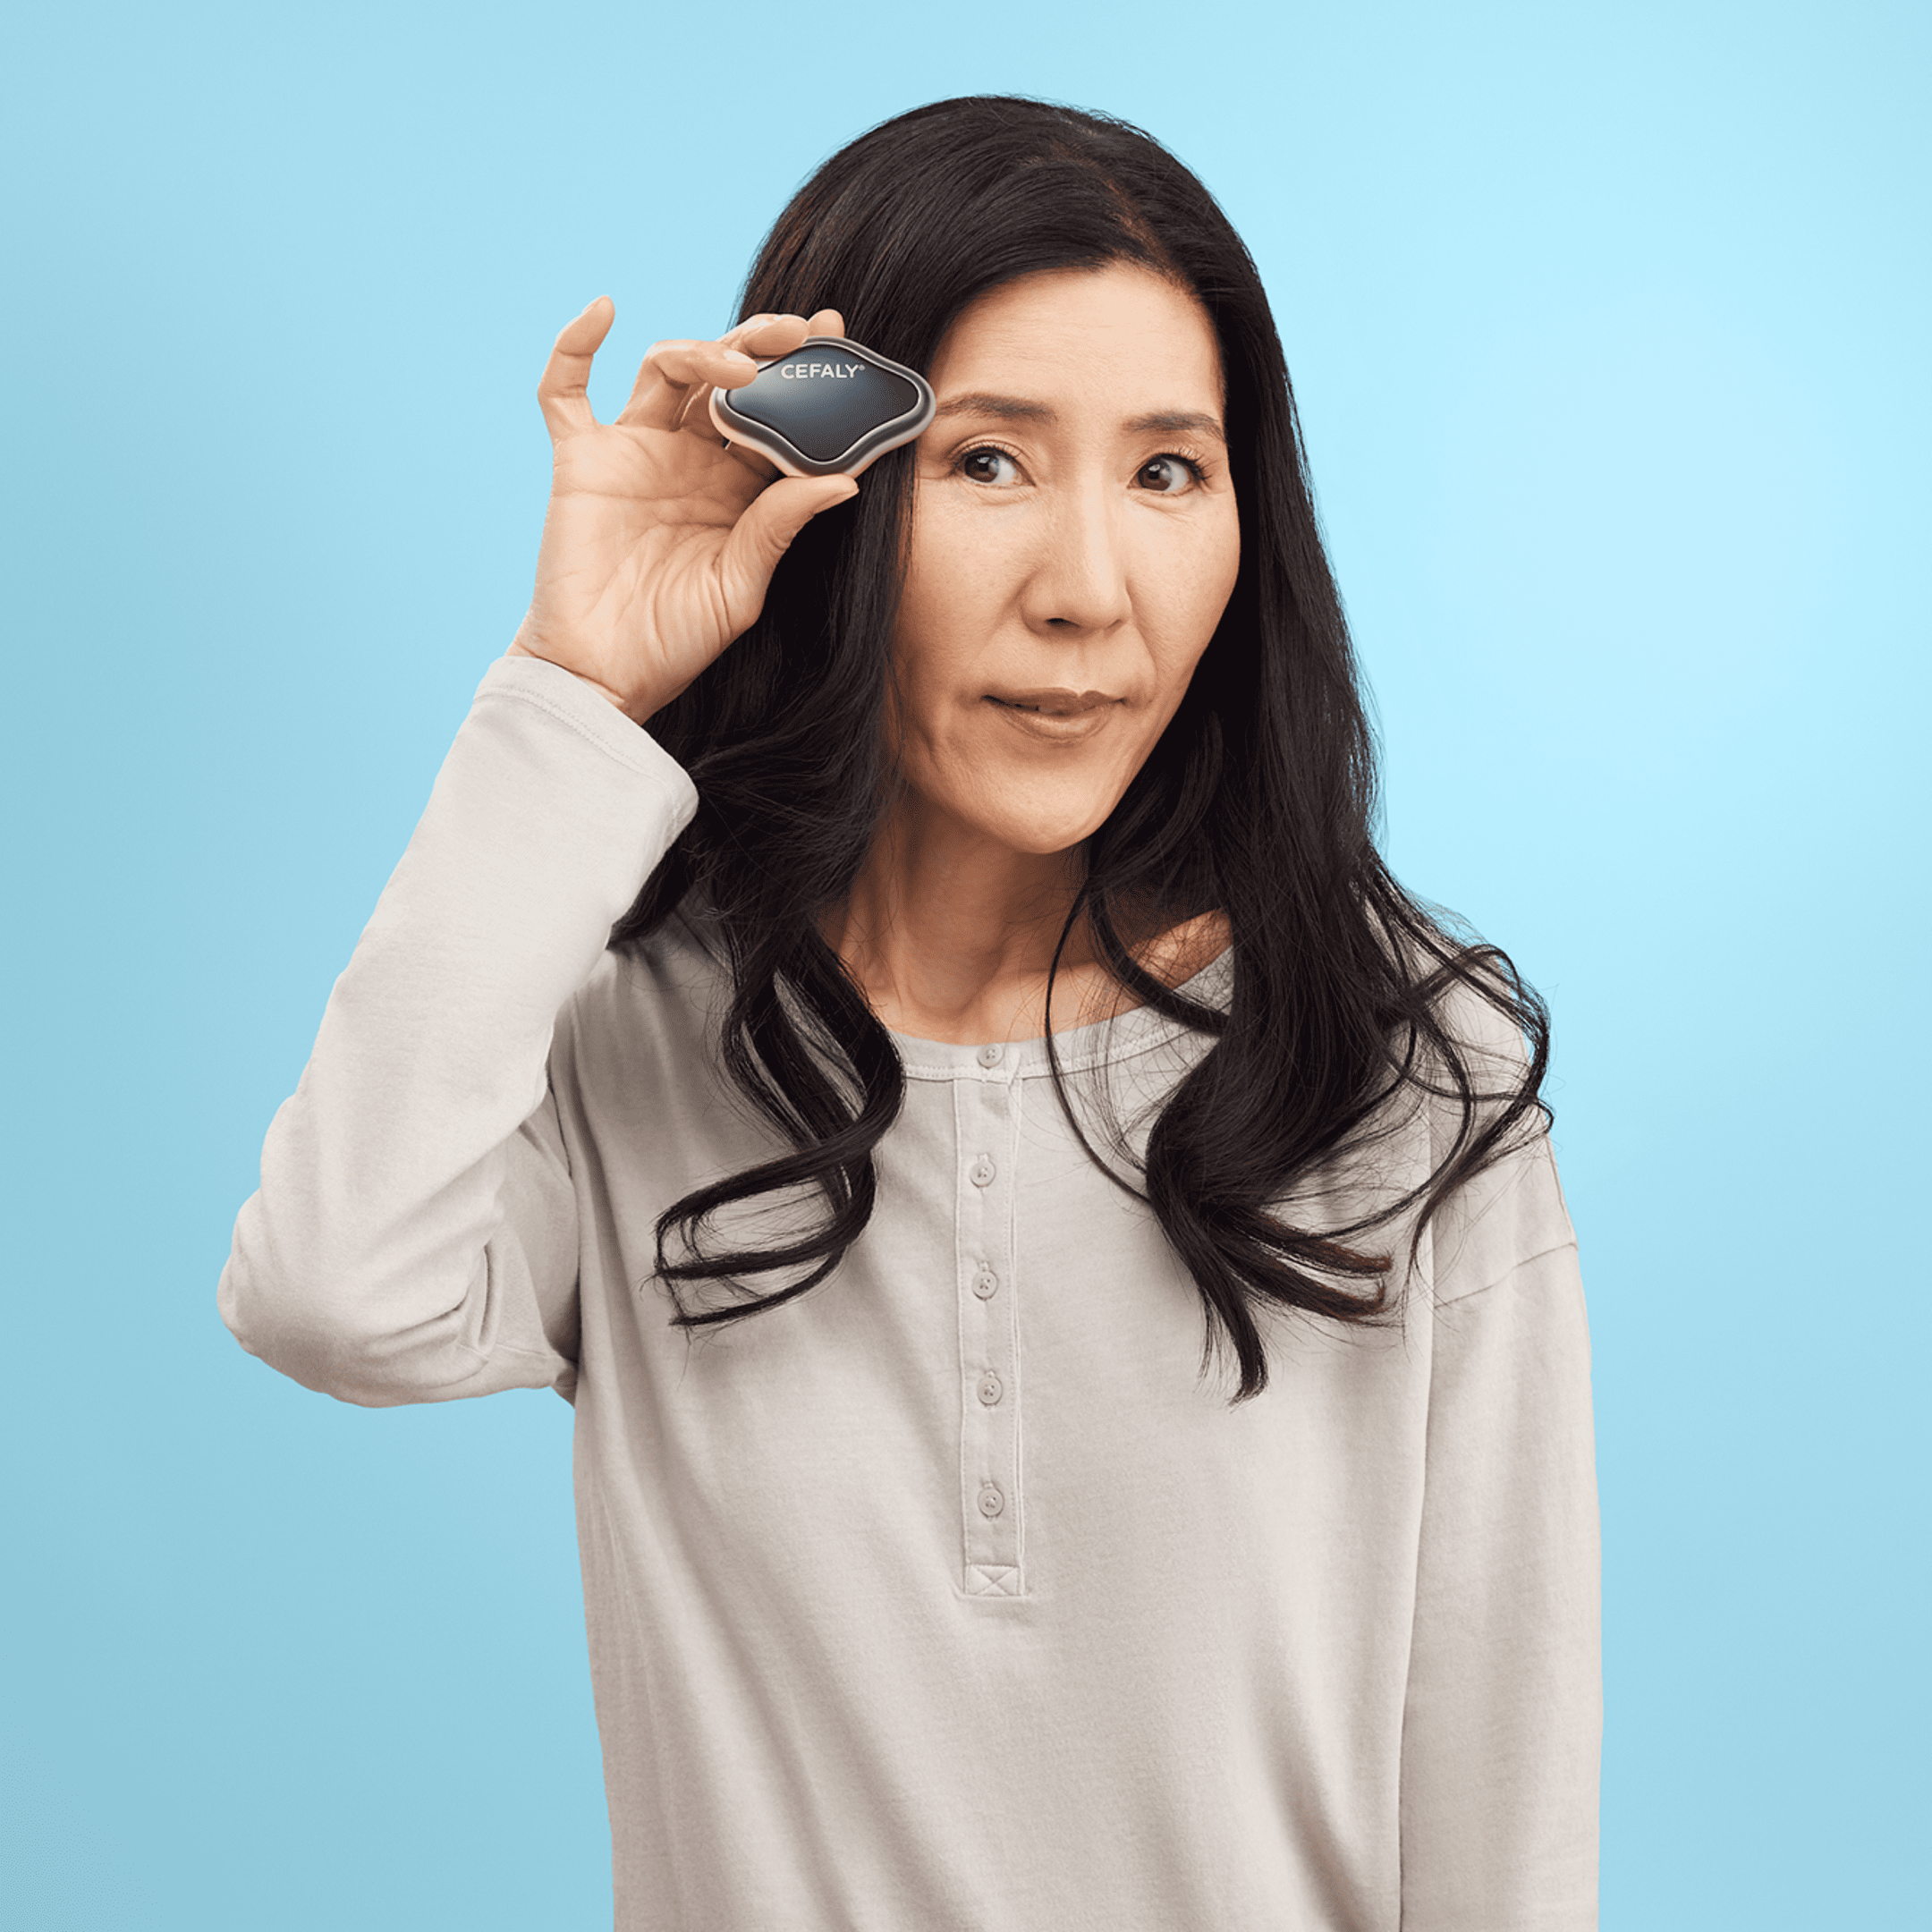 Woman wearing a Cefaly Migraine treatment and prevention device on her forehead  6